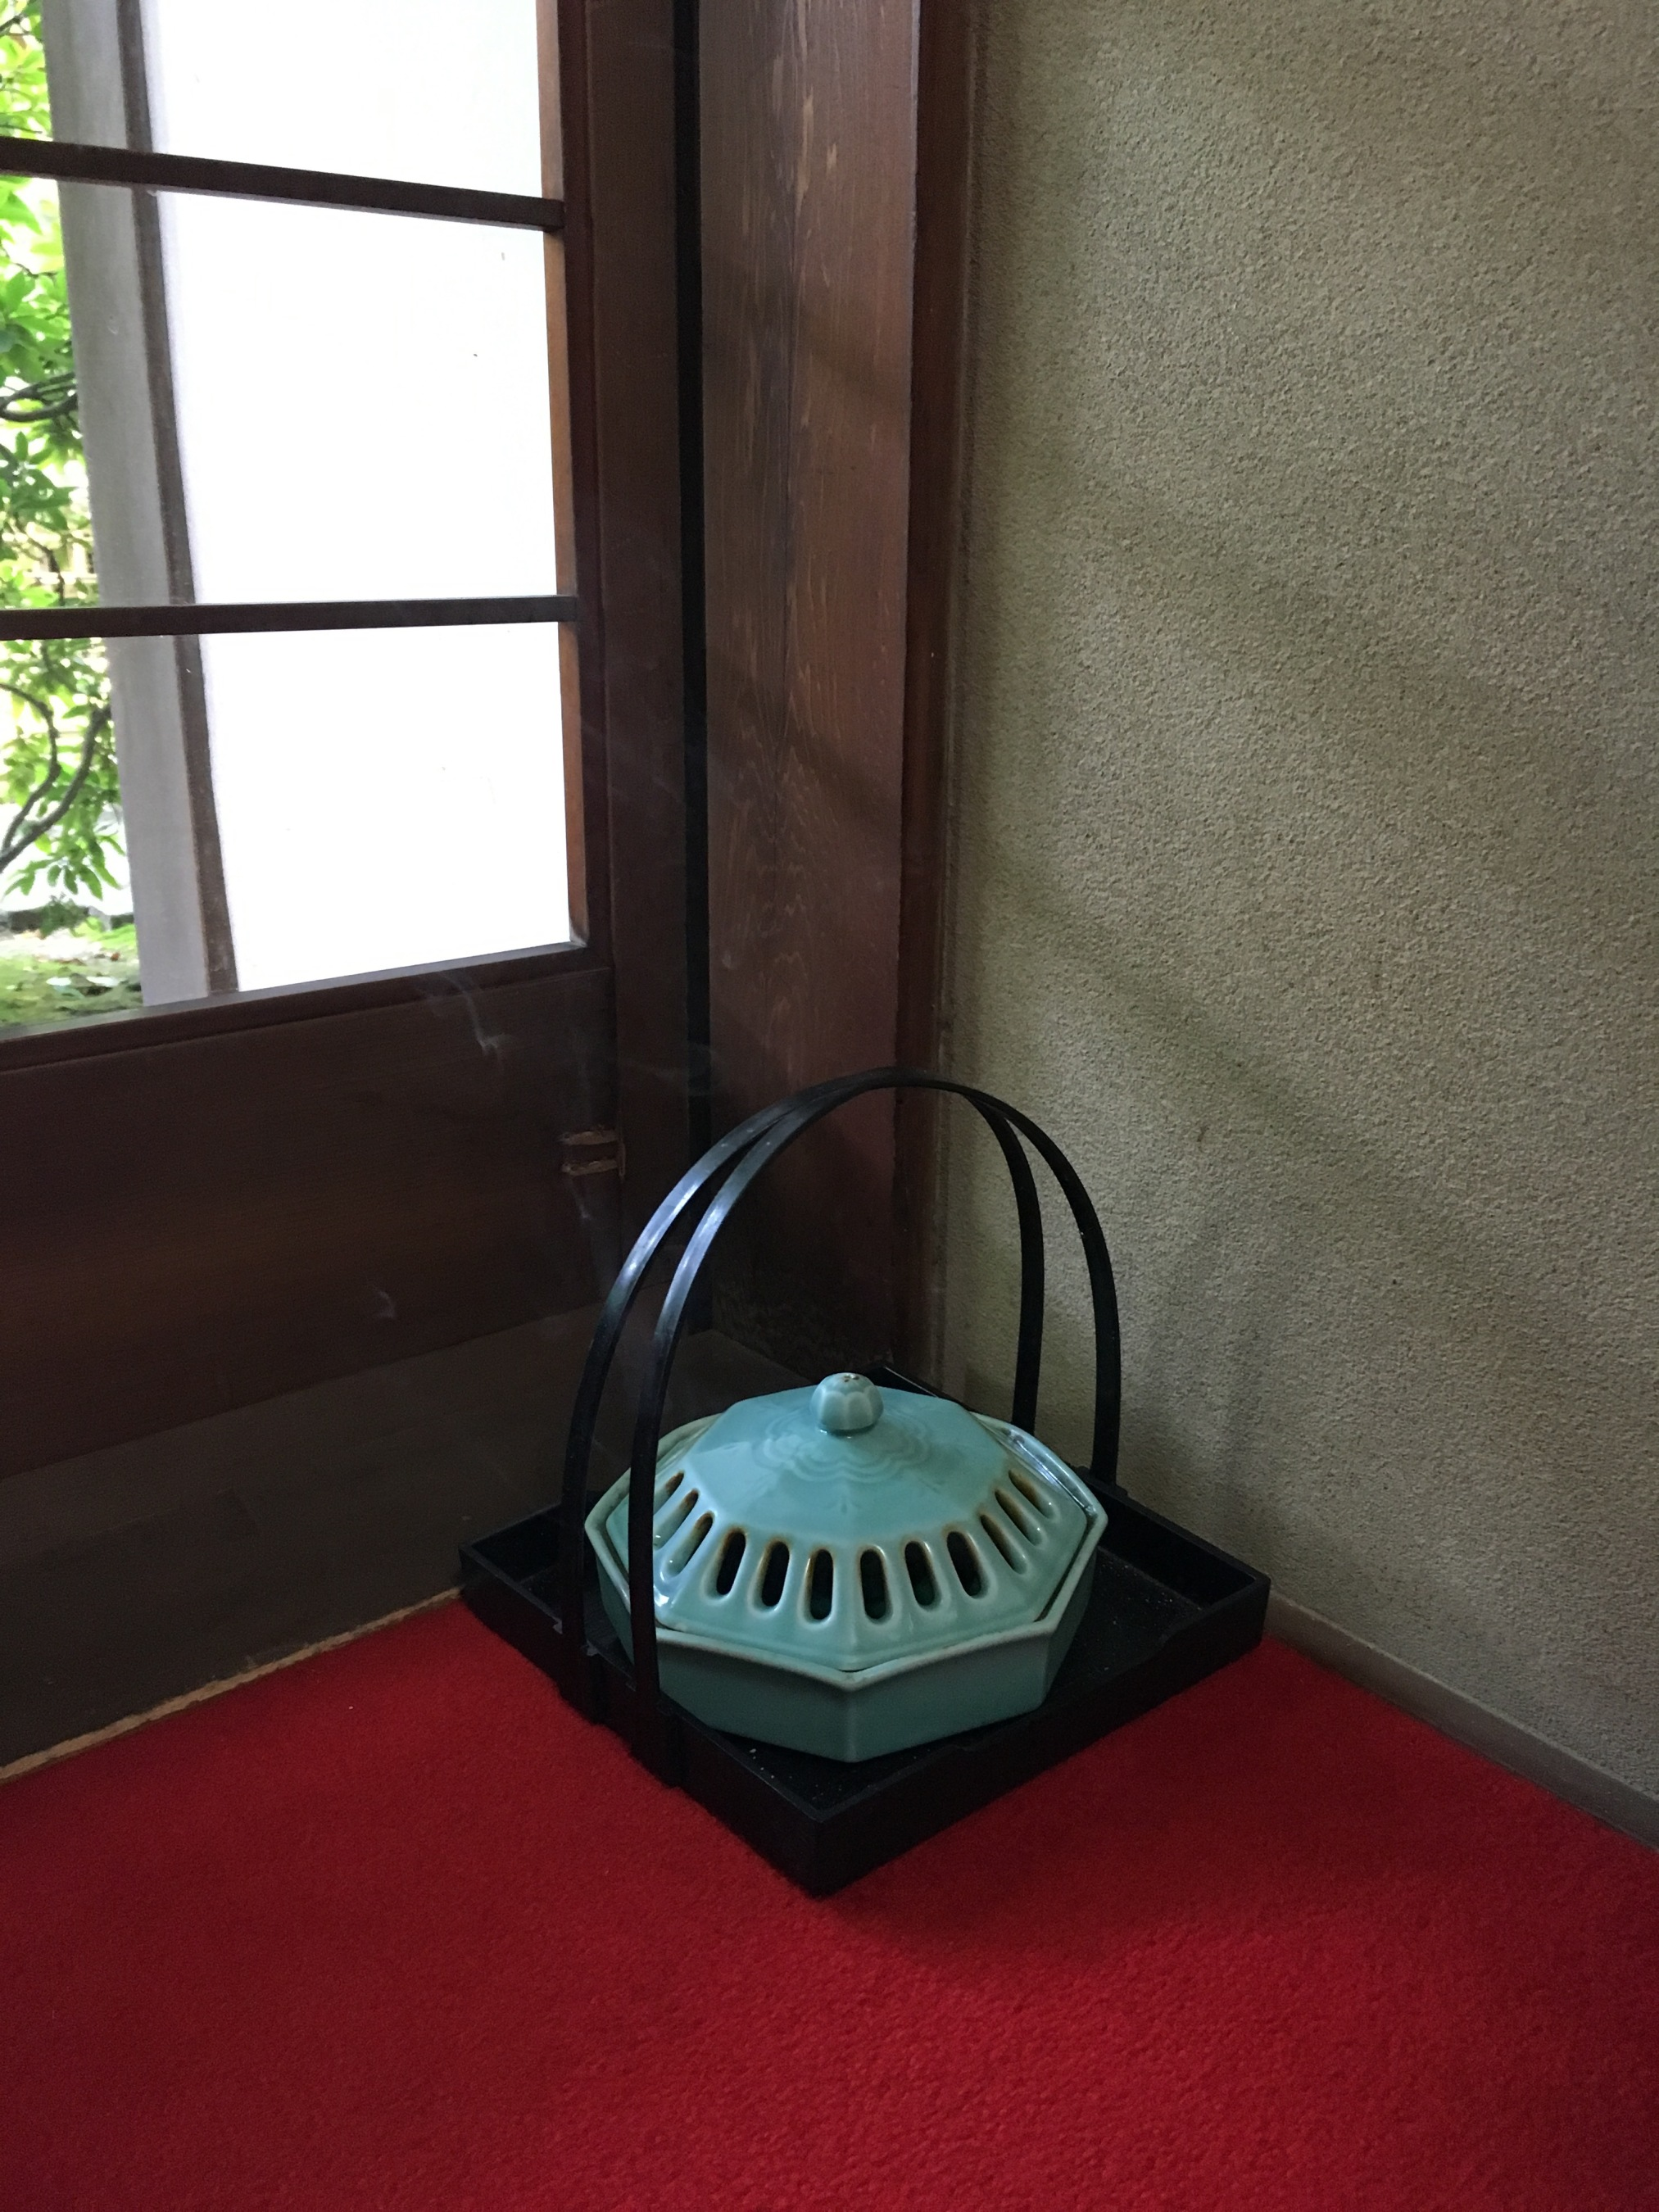 There is a 'Way of Incense (Fragrance)' just as there is a 'Way of Tea'. Kodo is not as well known as Chado. Indeed, when you type Kodo into an internet search the taiko group comes up! This incense burner is in the Isuzen restaurant at Daitoku-ji temple. Incense is also prominent at Buddhist Temples where it is used for prayer and purification. Kodo, like Chado, has a set of codified ways of handling incense. It is something I would like to explore further.